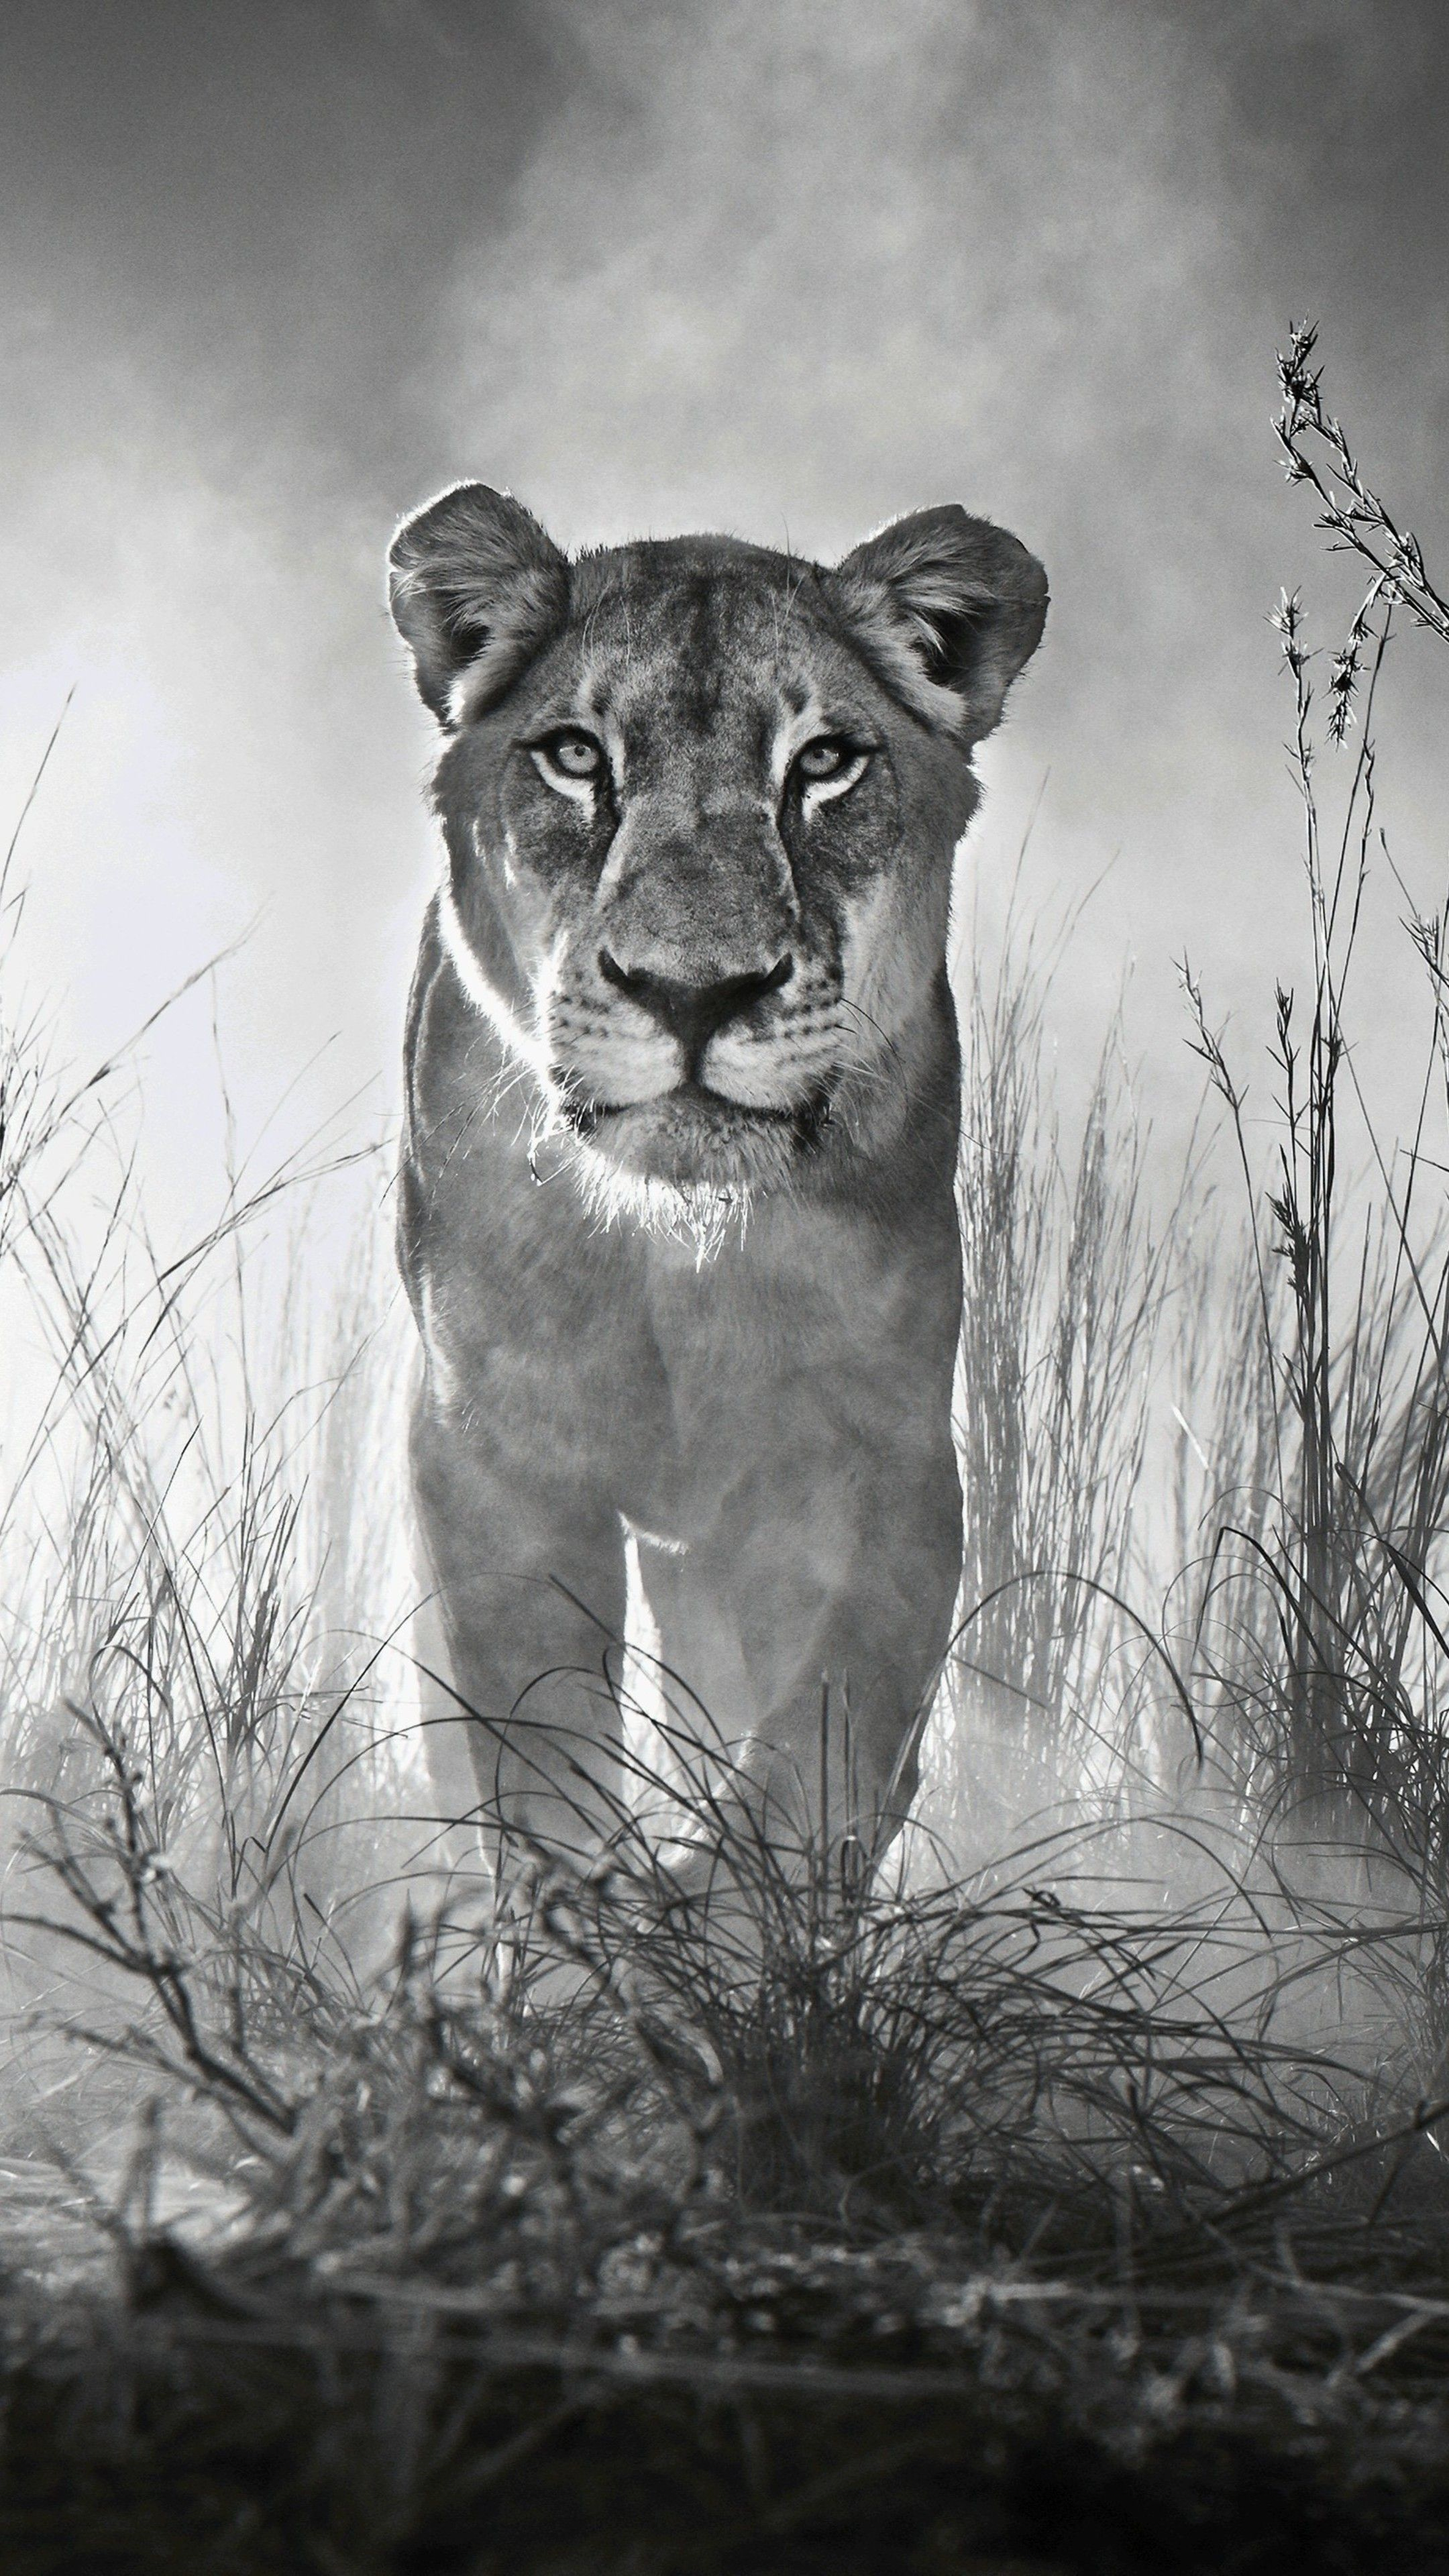 Animals Lion 4k Black And White Wallpapers Lion Pictures Animal Wallpaper Lion Wallpaper Iphone